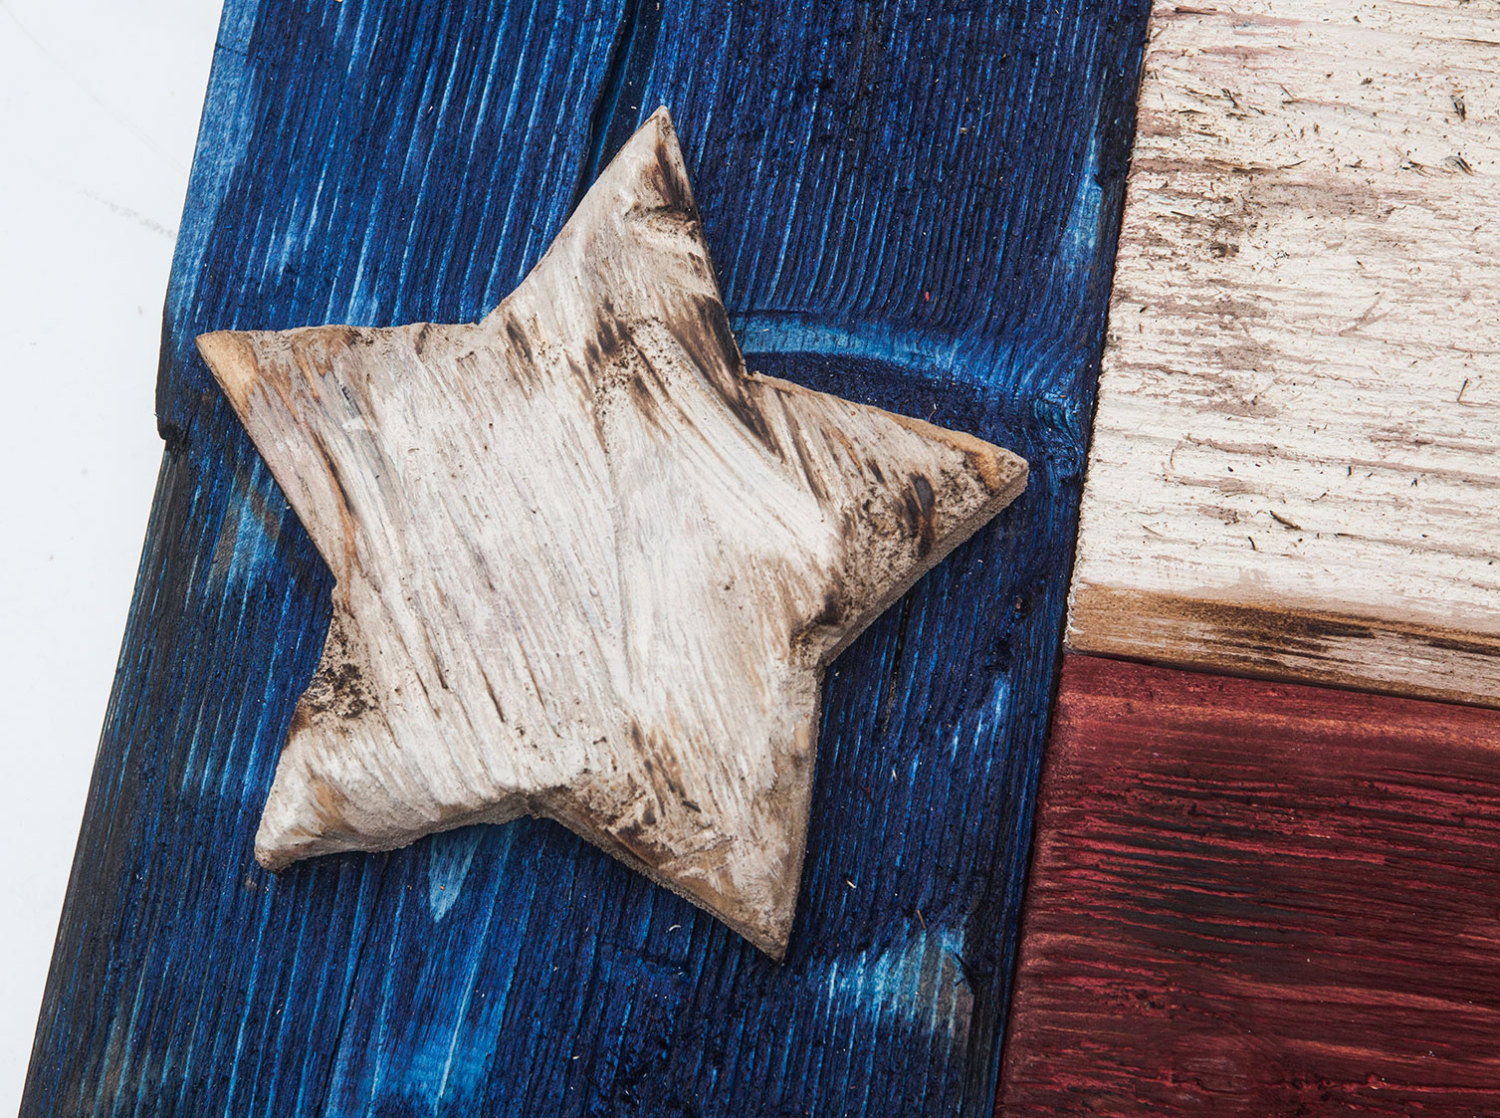 Weathered Wood One Of A Kind 3D Texas Flag, Wooden